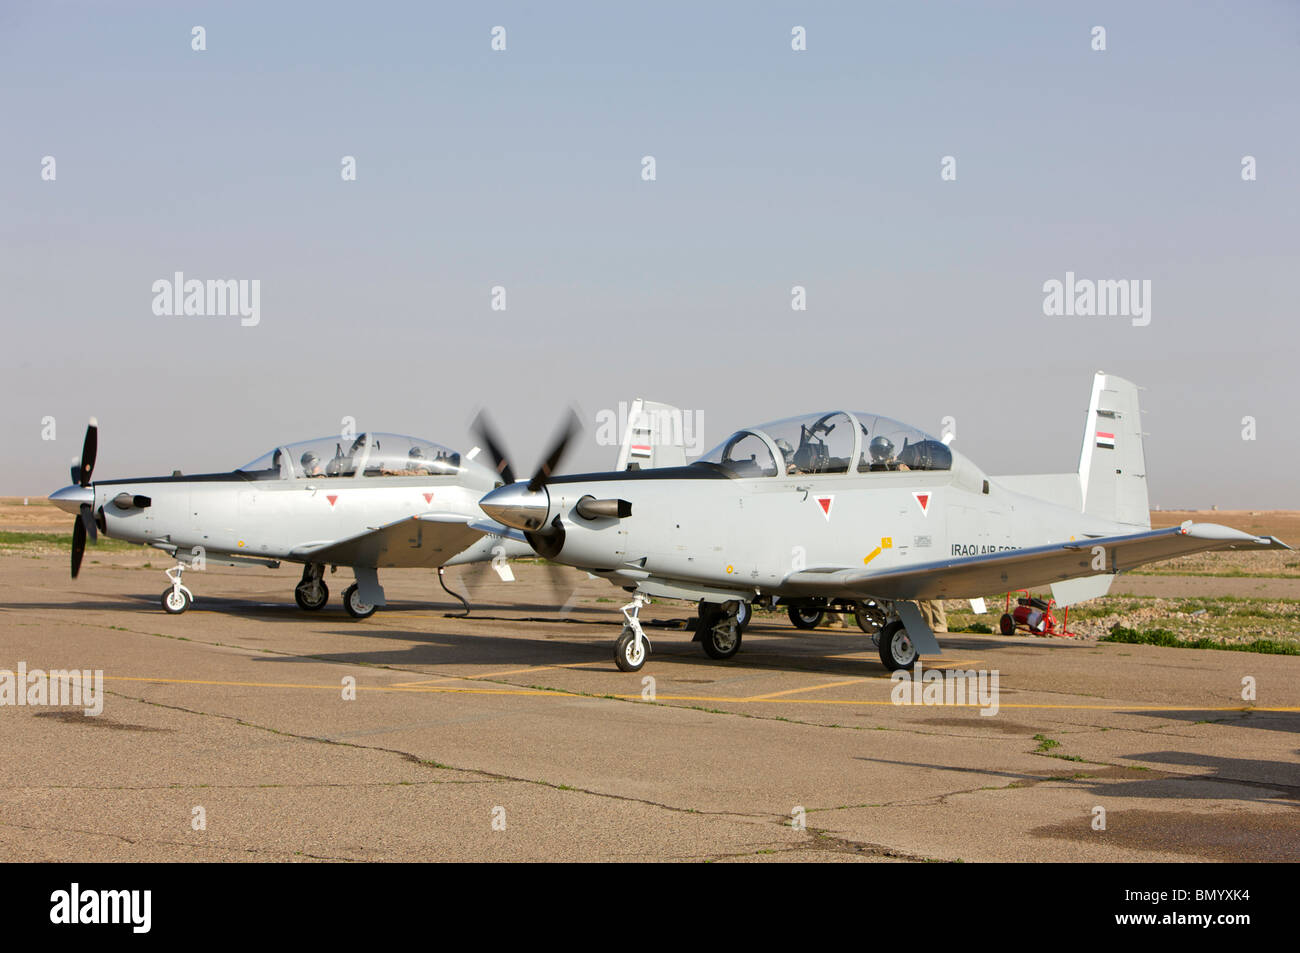 Pilots perform a pre-flight on their T-6 Texan trainer aircraft. - Stock Image